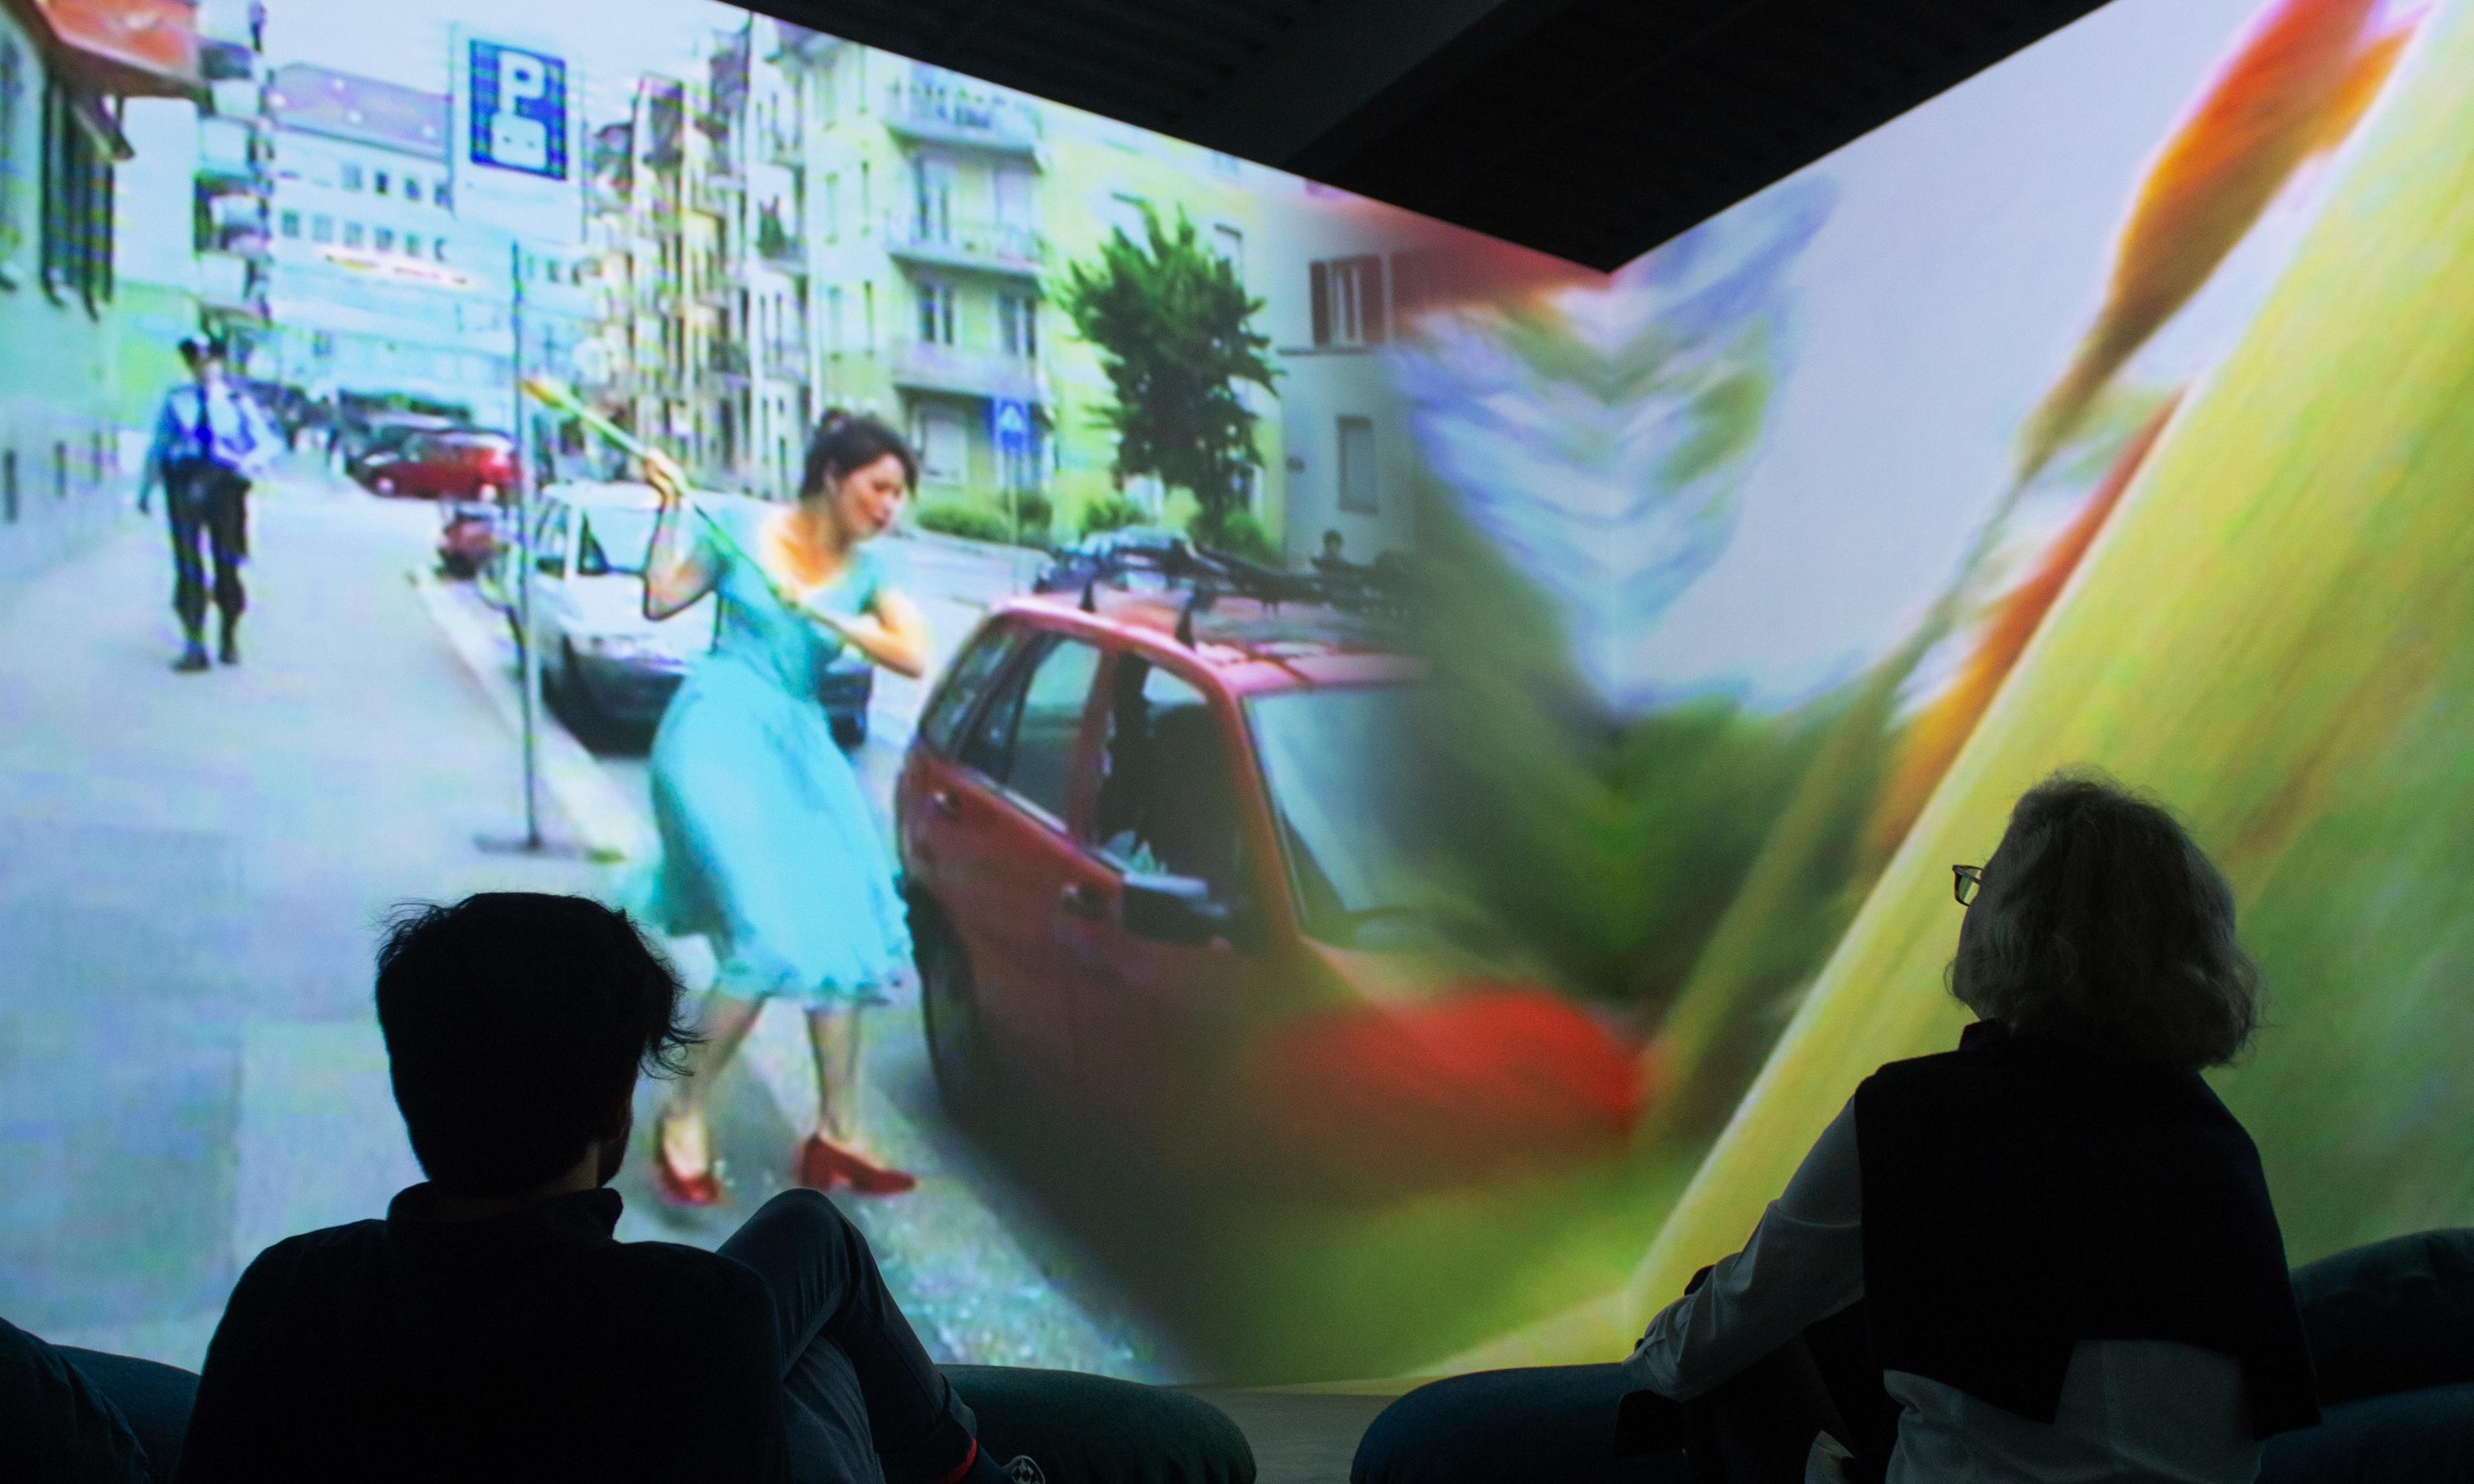 Smashed cars and Chinese chewing: the five masterpieces of video art